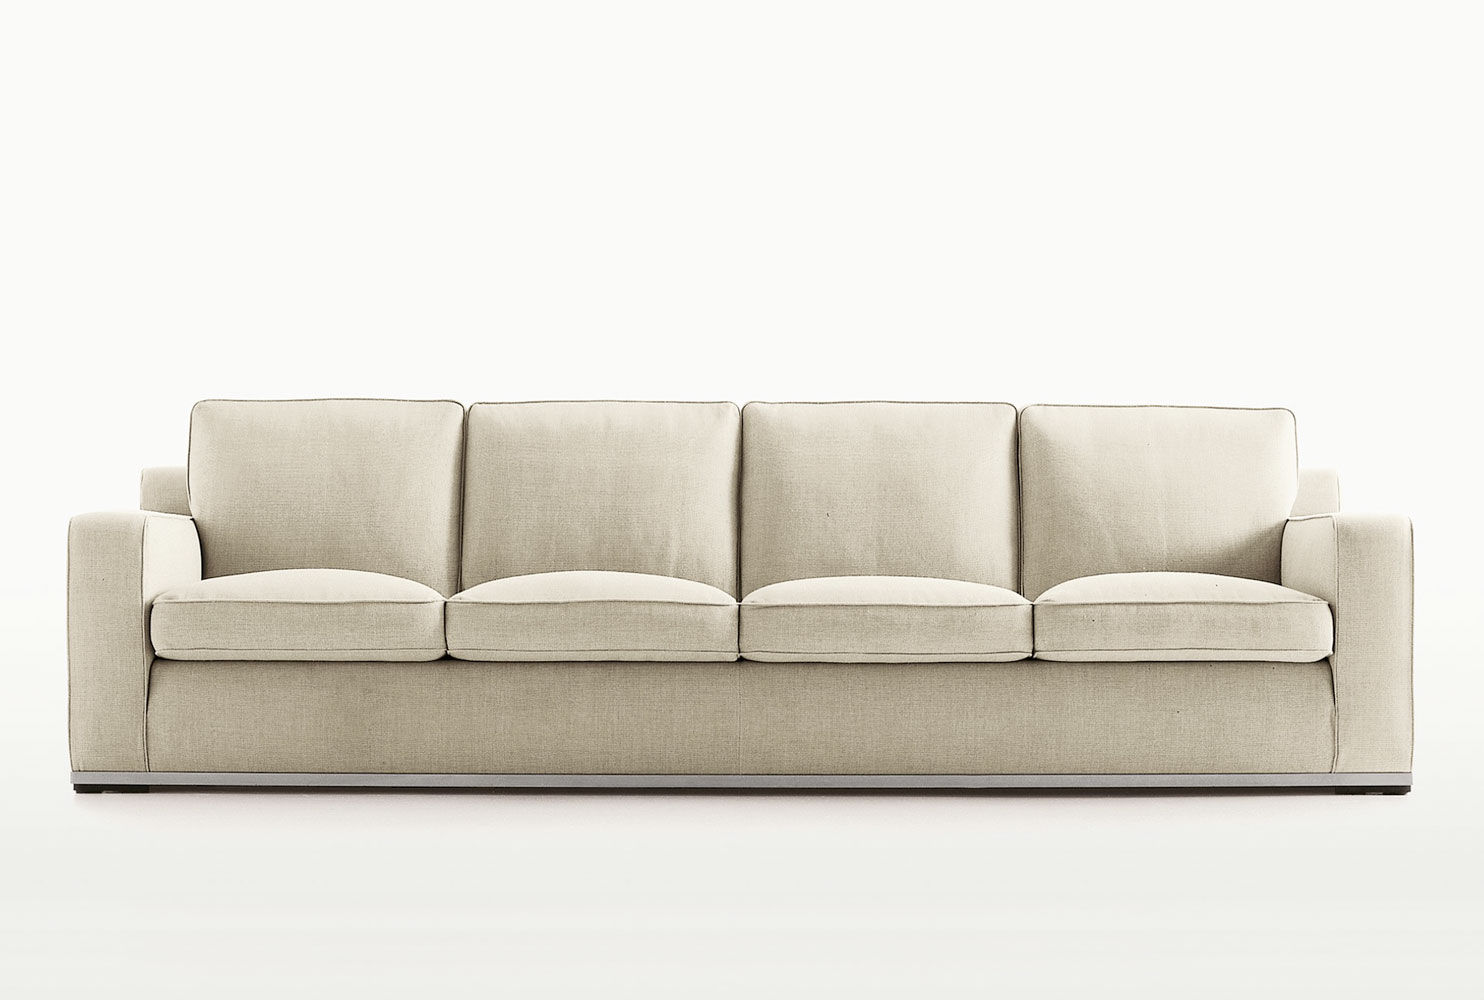 Merveilleux Contemporary Sofa / Fabric / By Antonio Citterio / 3 Seater